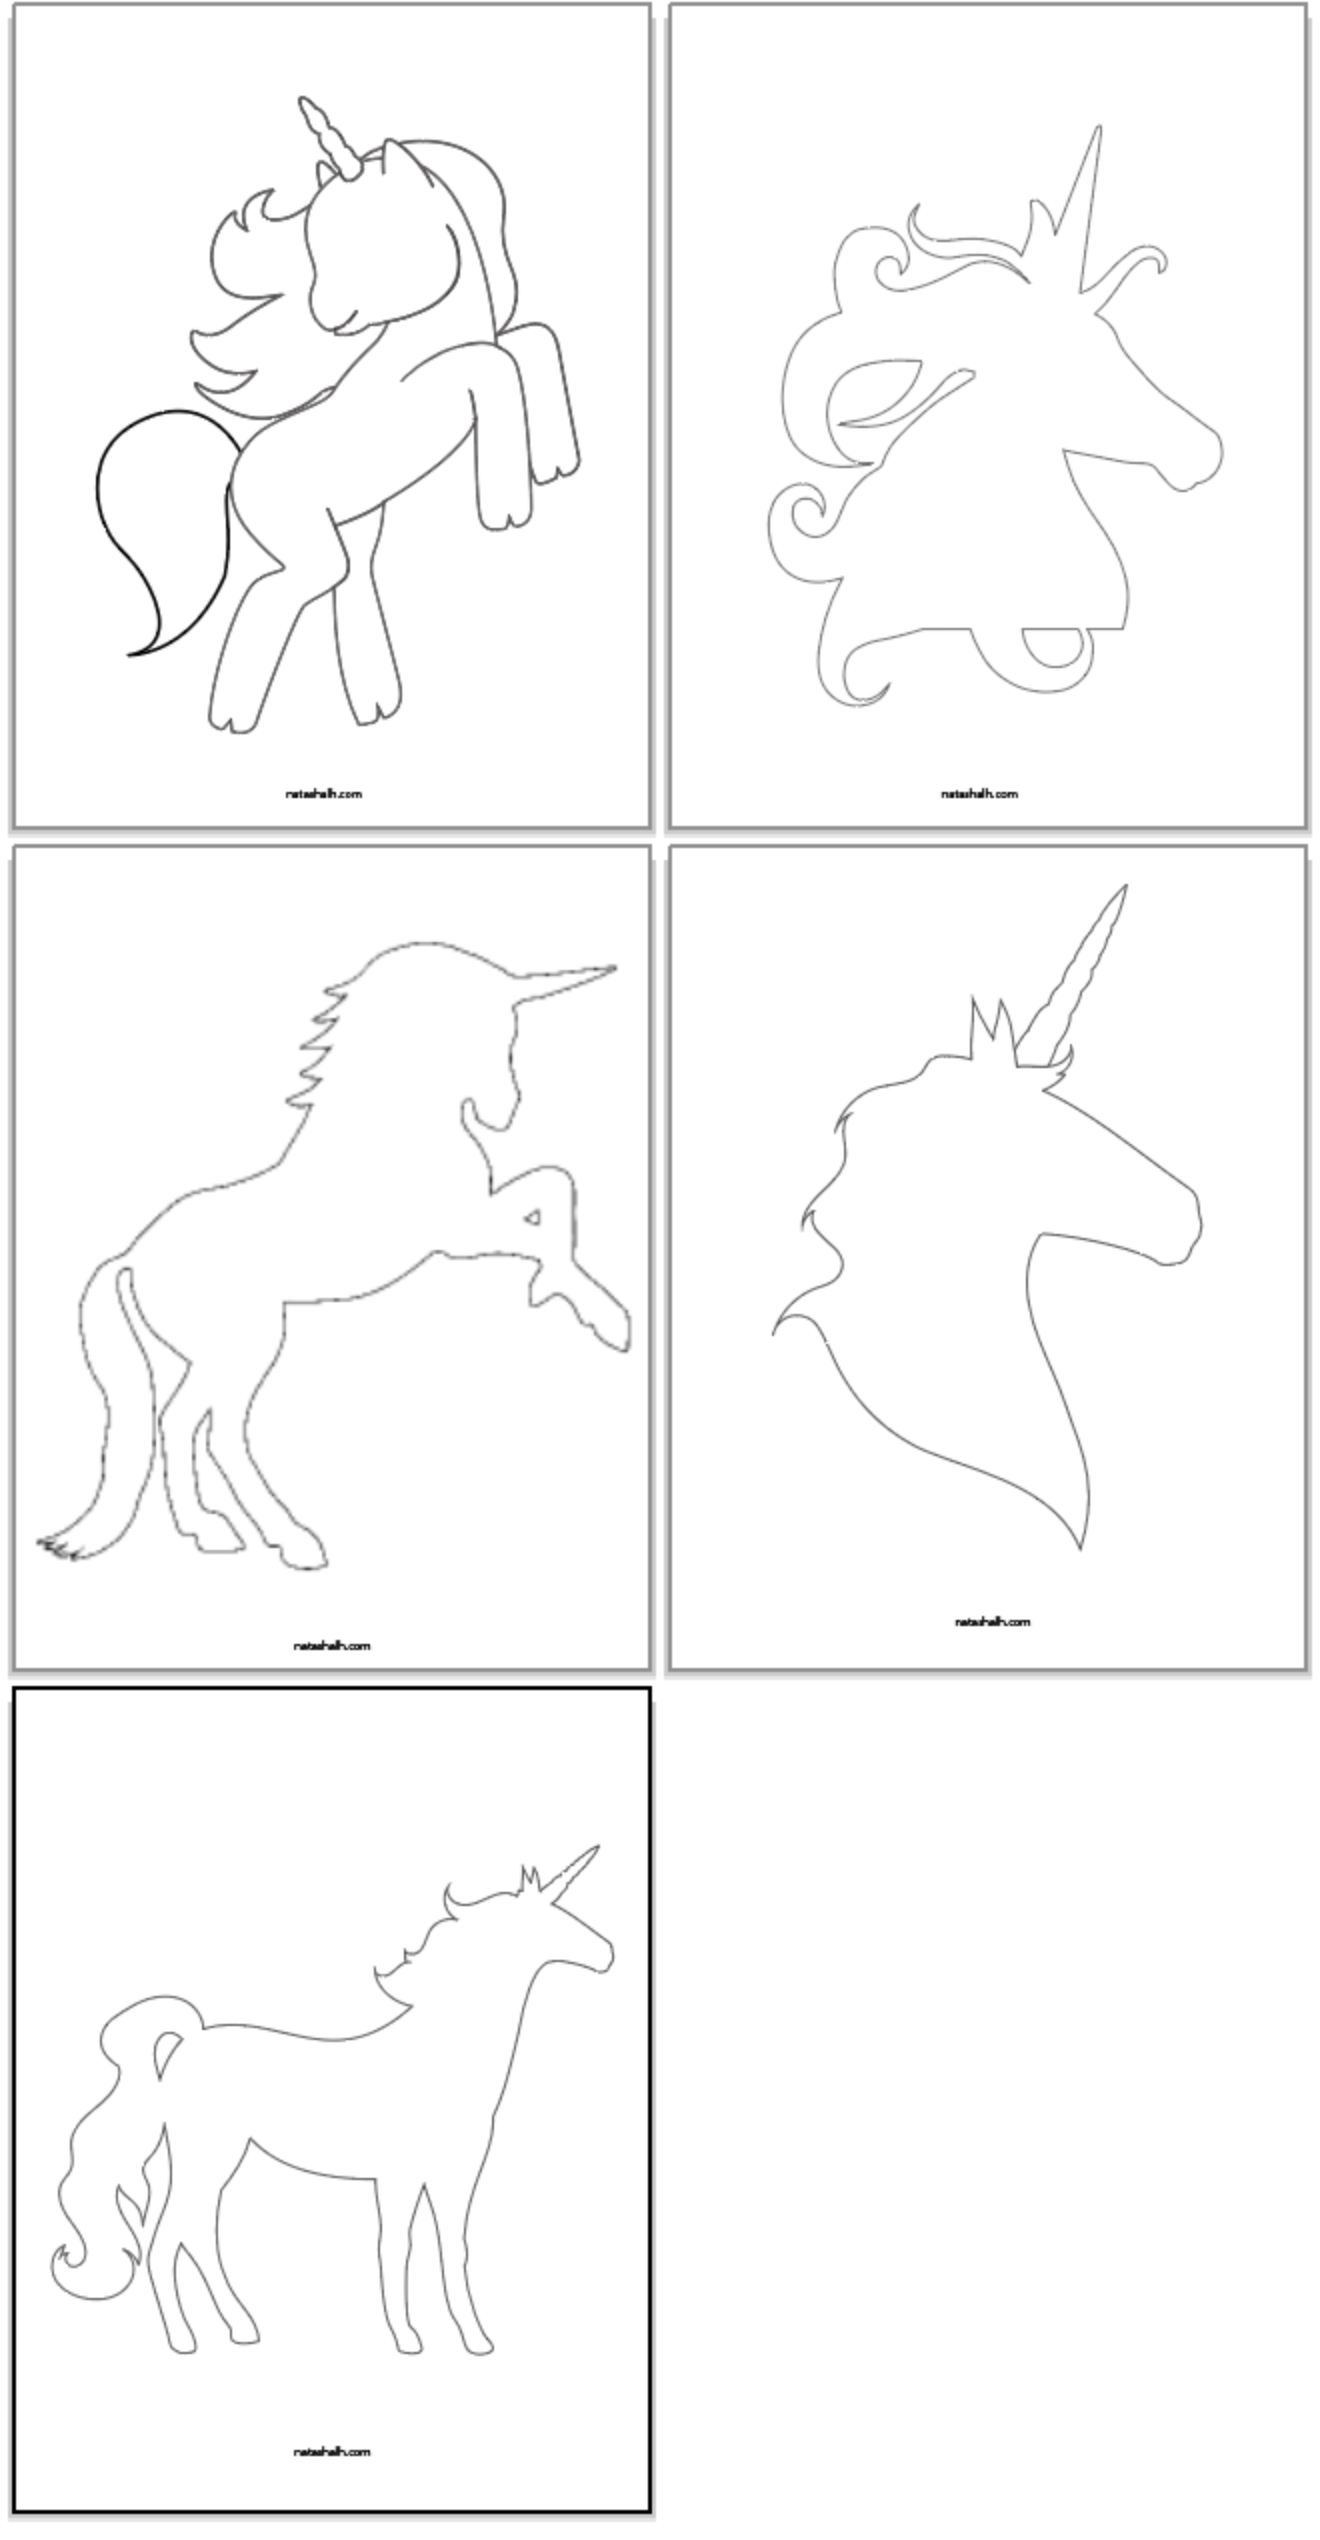 5 Free Printable Unicorn Templates For Cute Unicorn Crafts Unicorn Stencil Unicorn Printables Unicorn Outline